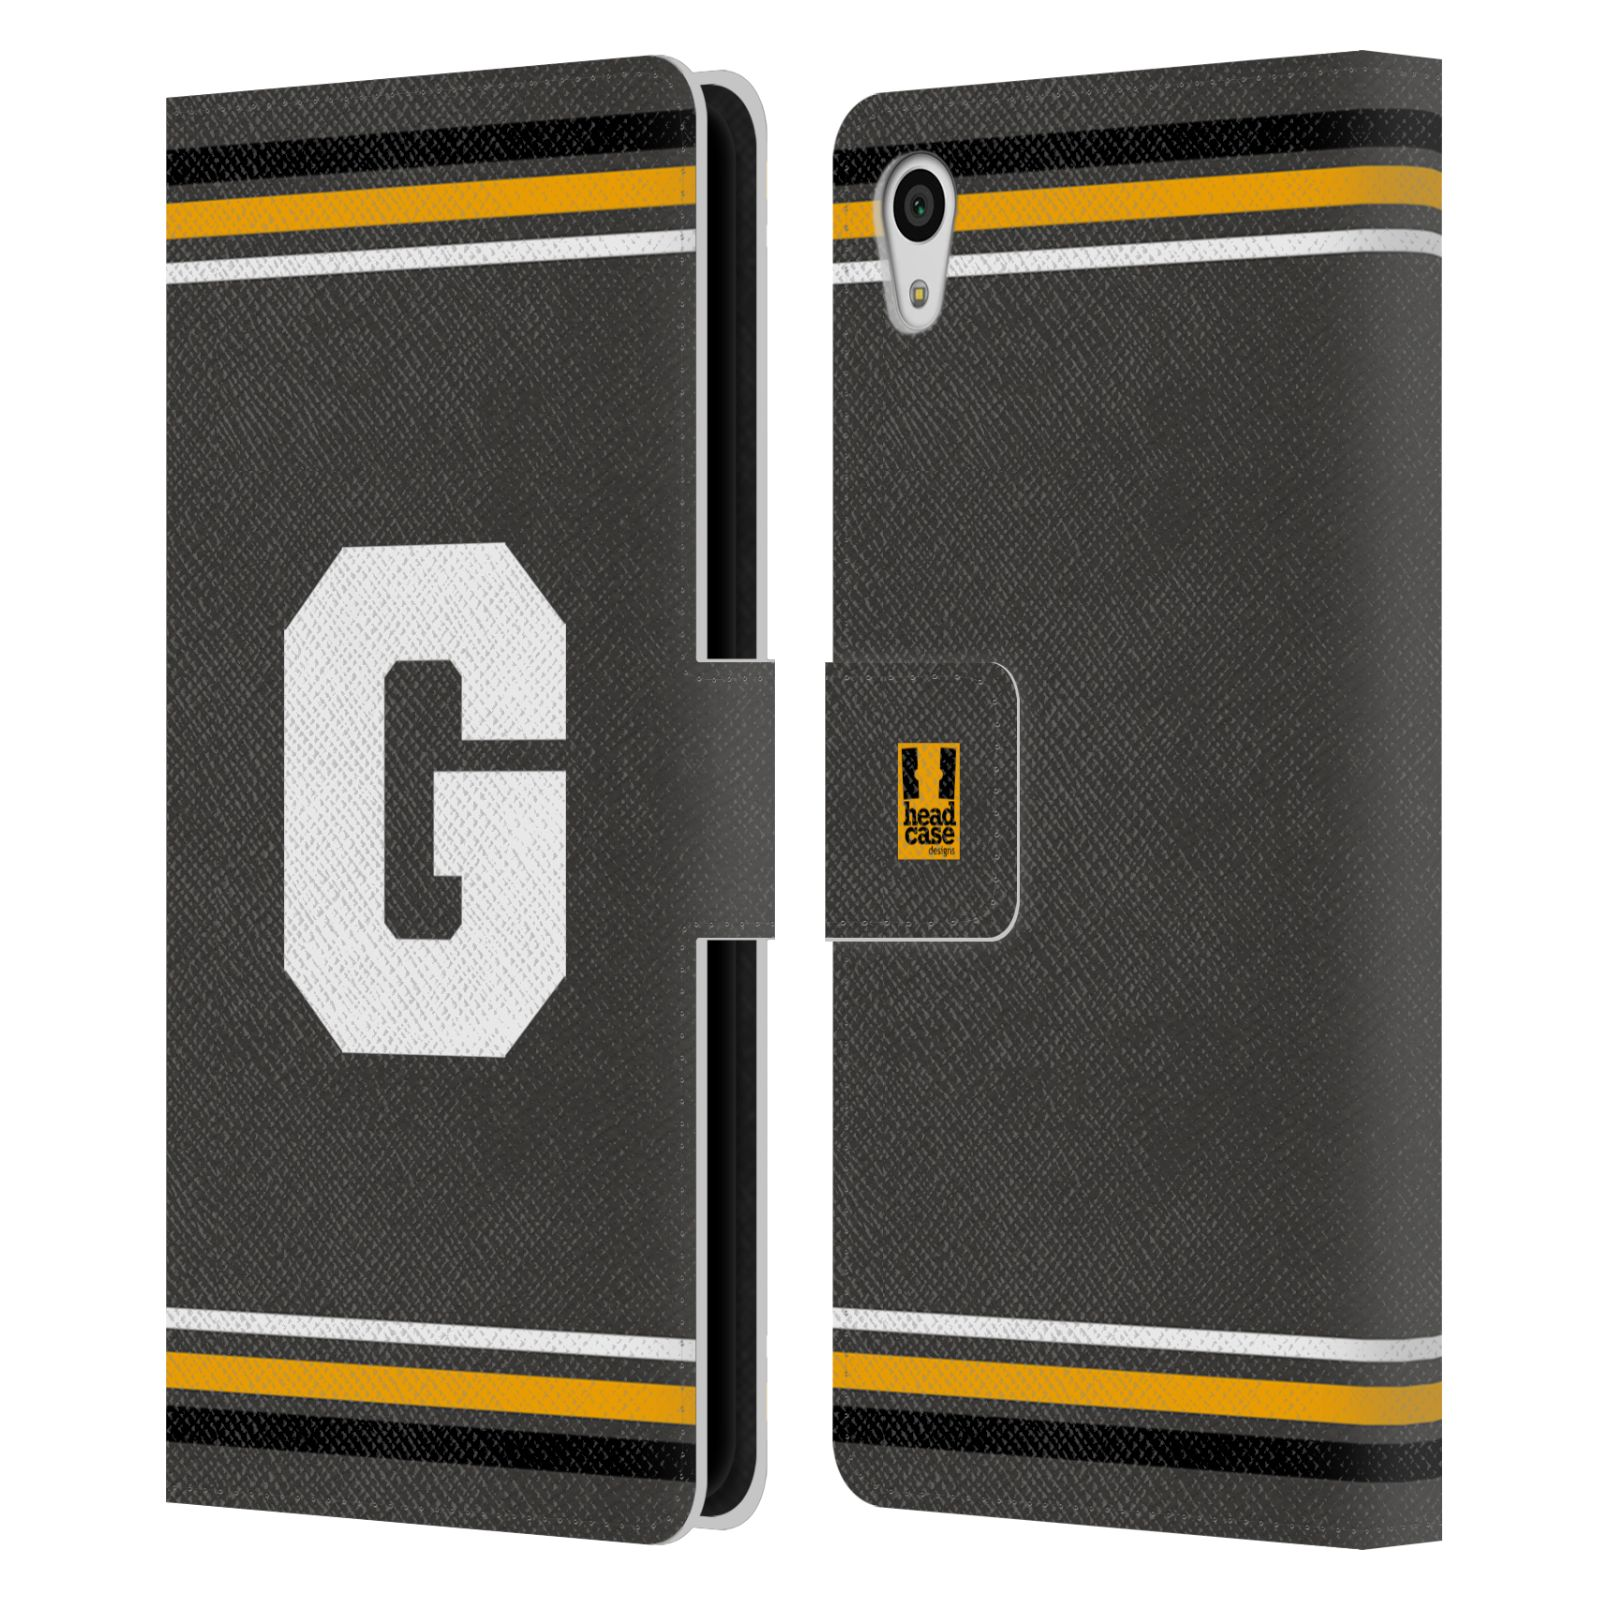 HEAD-CASE-DESIGNS-COLLEGE-VARSITY-LEATHER-BOOK-WALLET-CASE-FOR-SONY-XPERIA-Z5